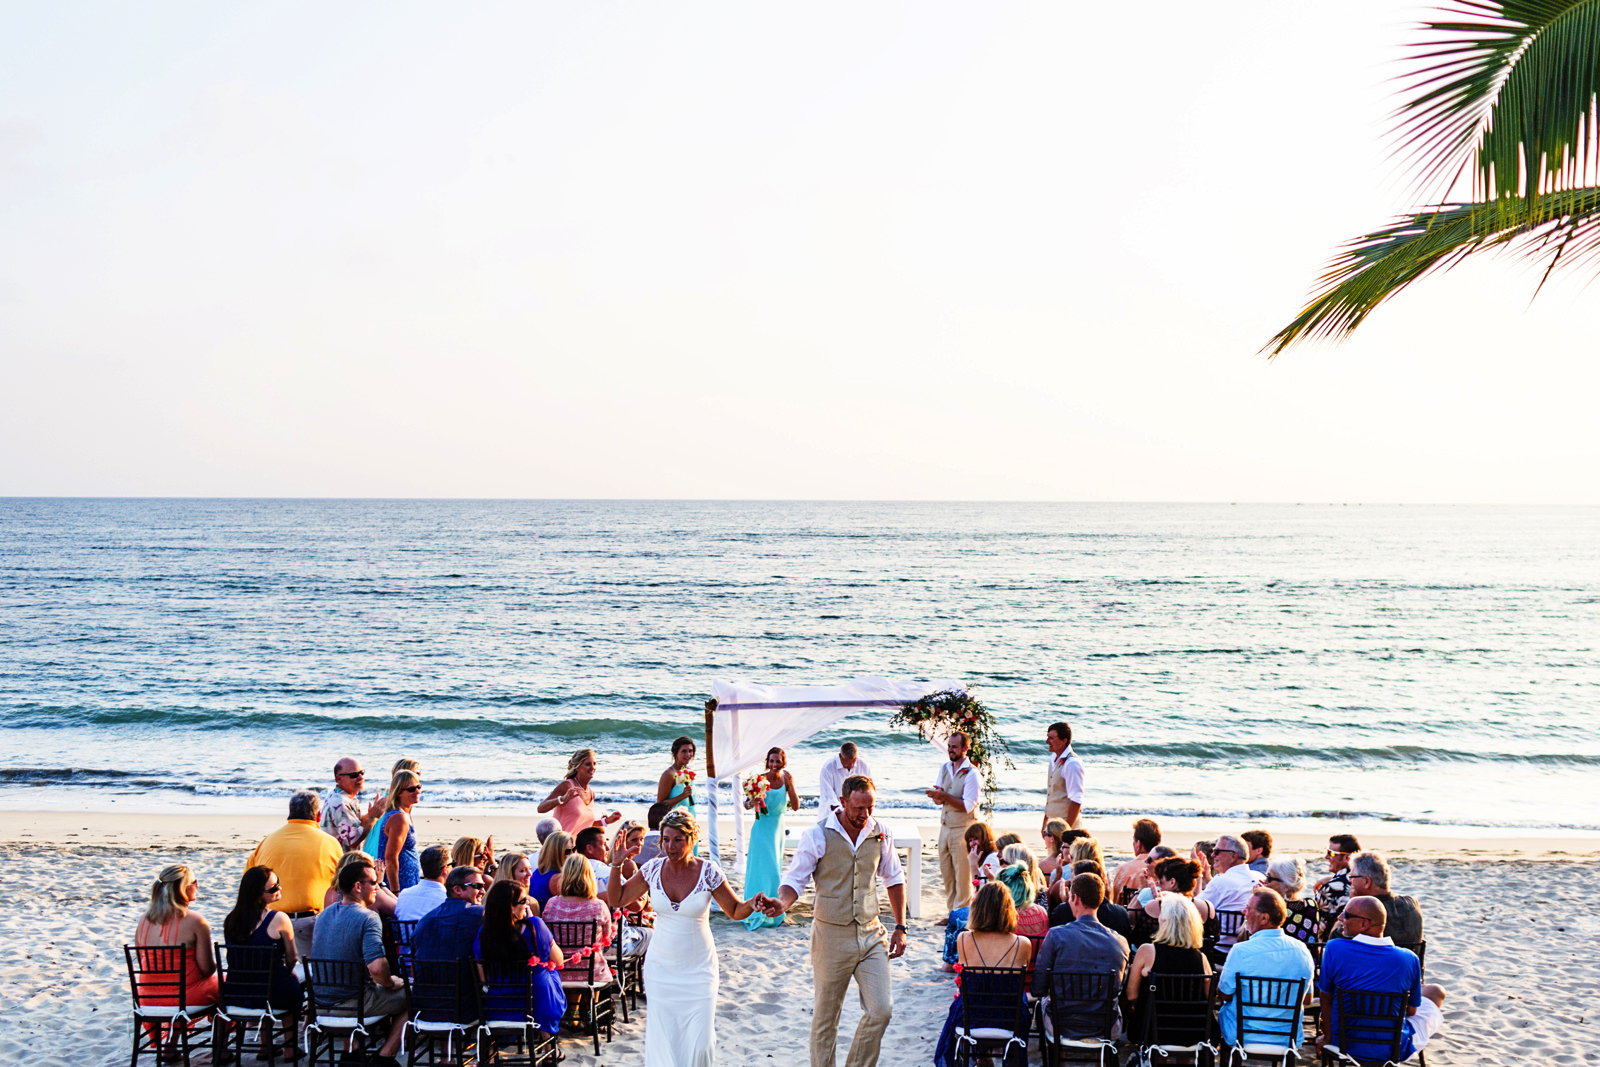 martoca-wedding-beach-view